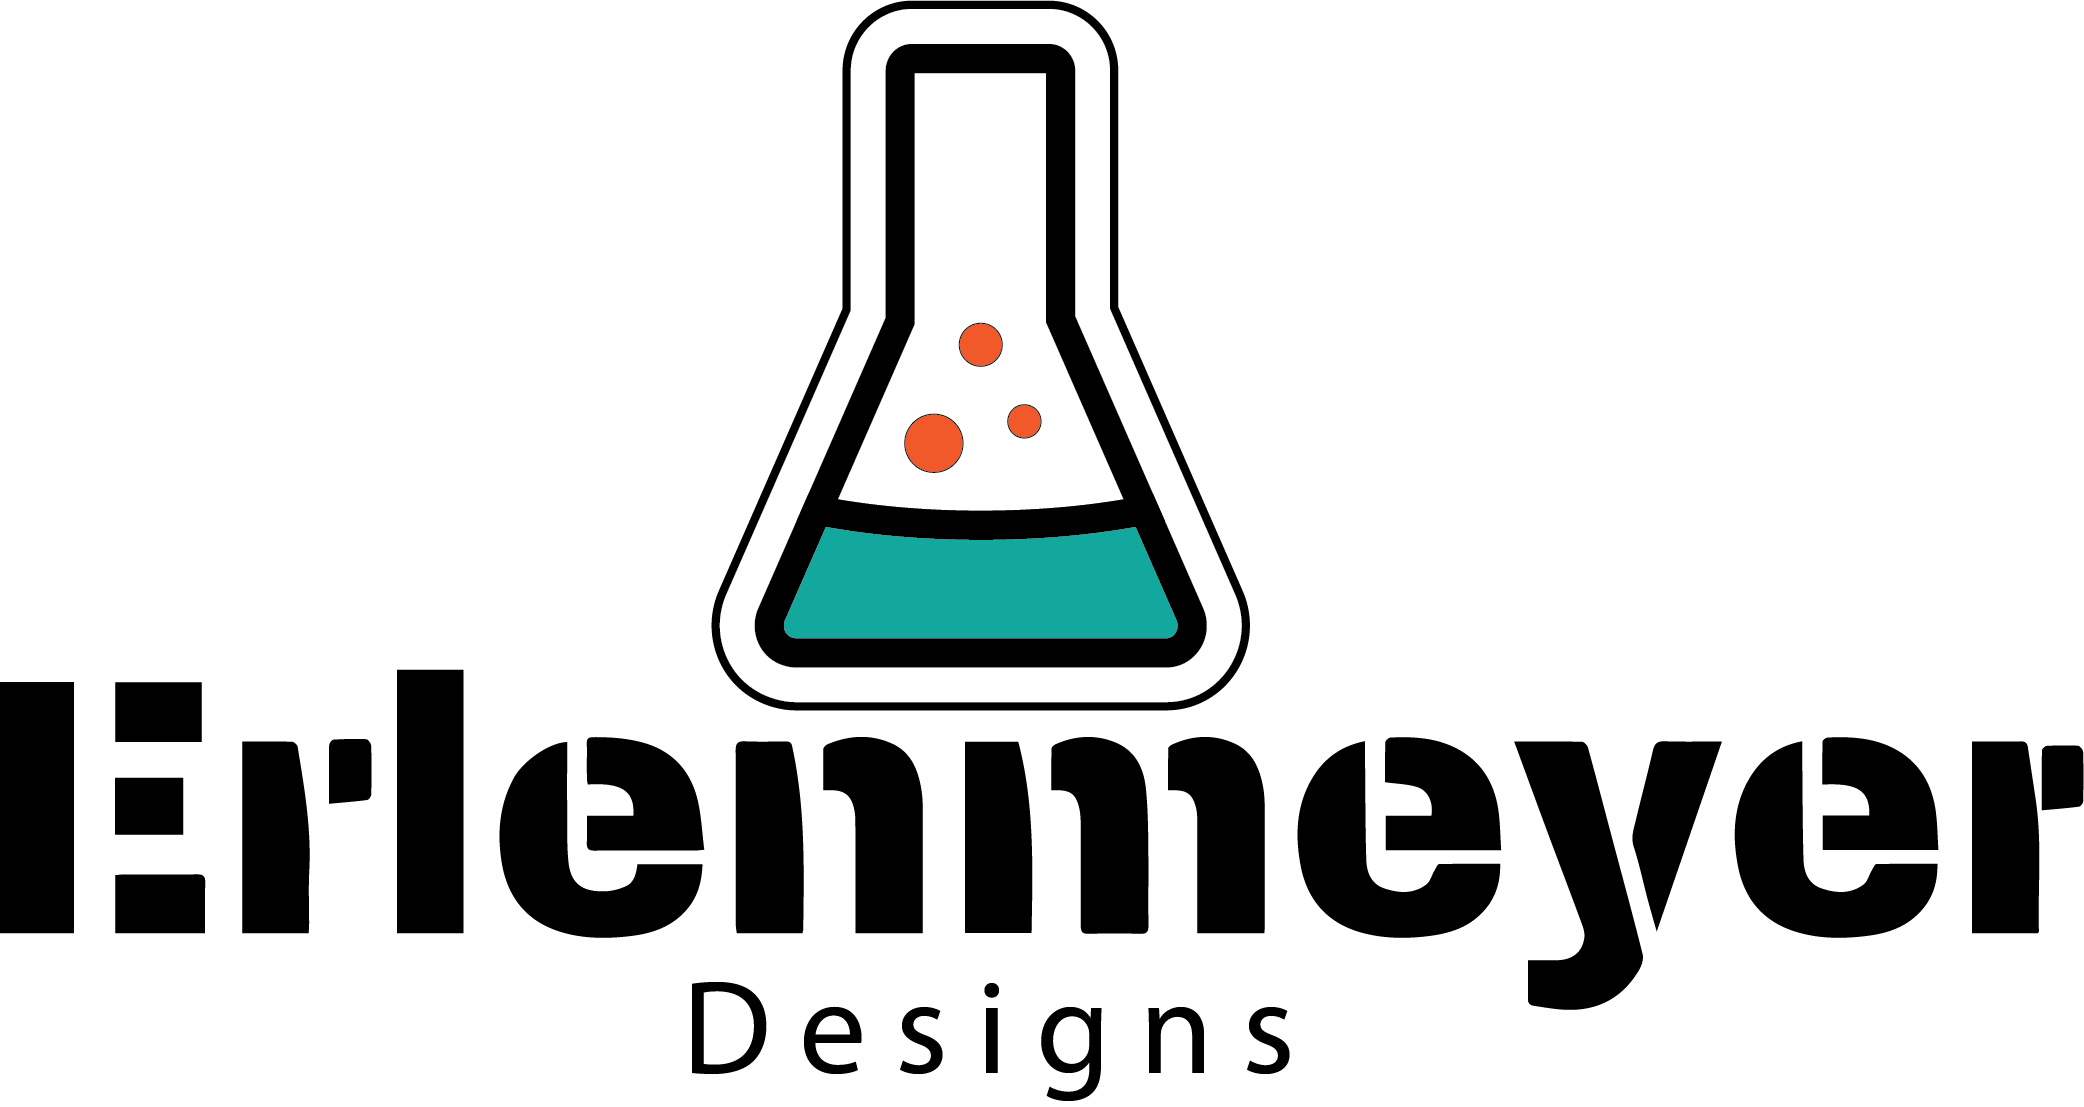 Erlenmeyer Designs - | Science + DESIGN